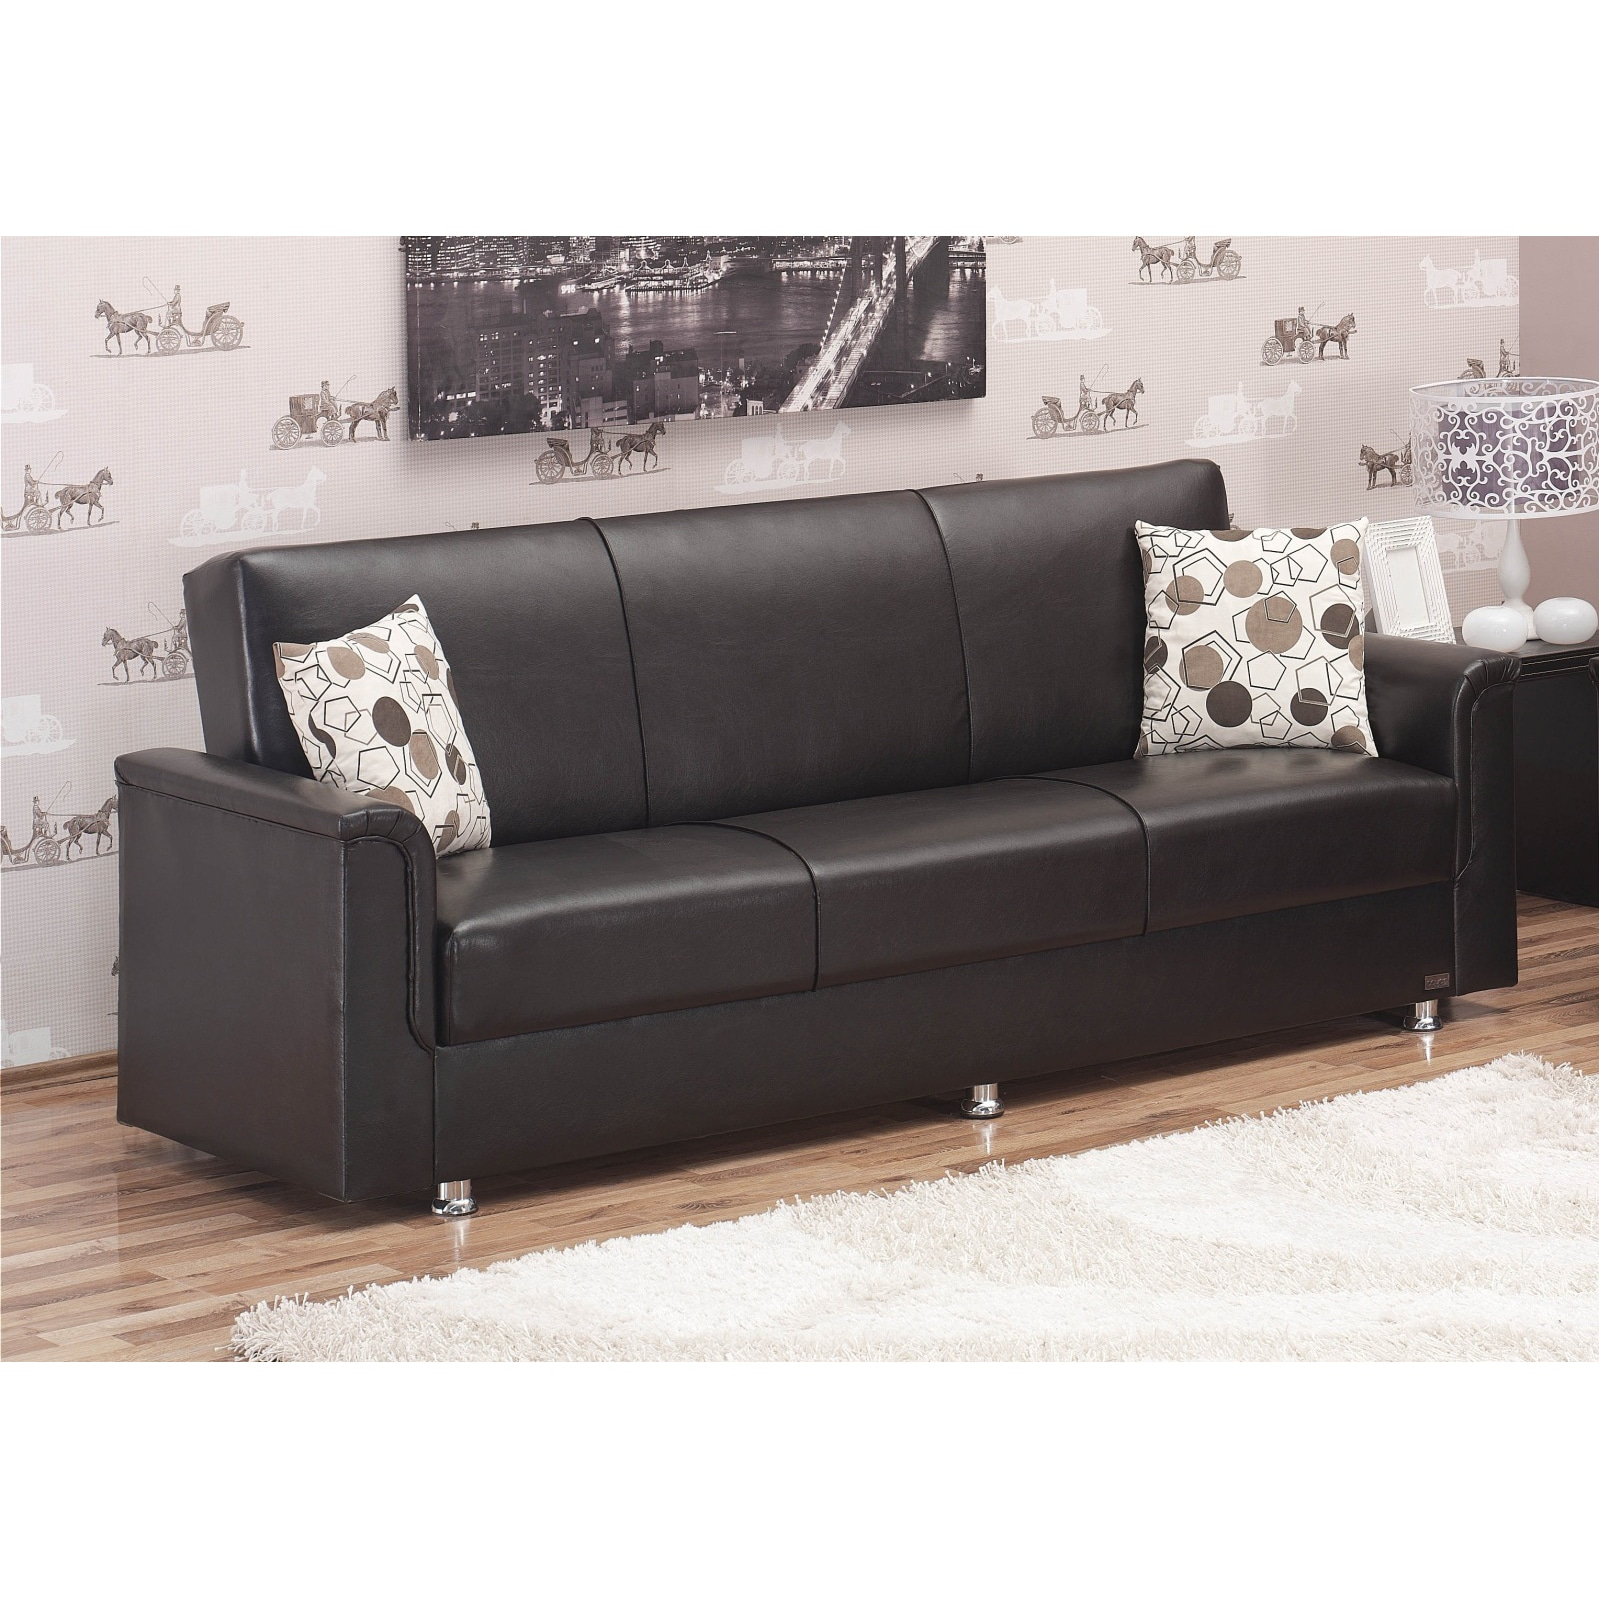 'Queens' Brown Bicast Leather Sofa Bed at Sears.com